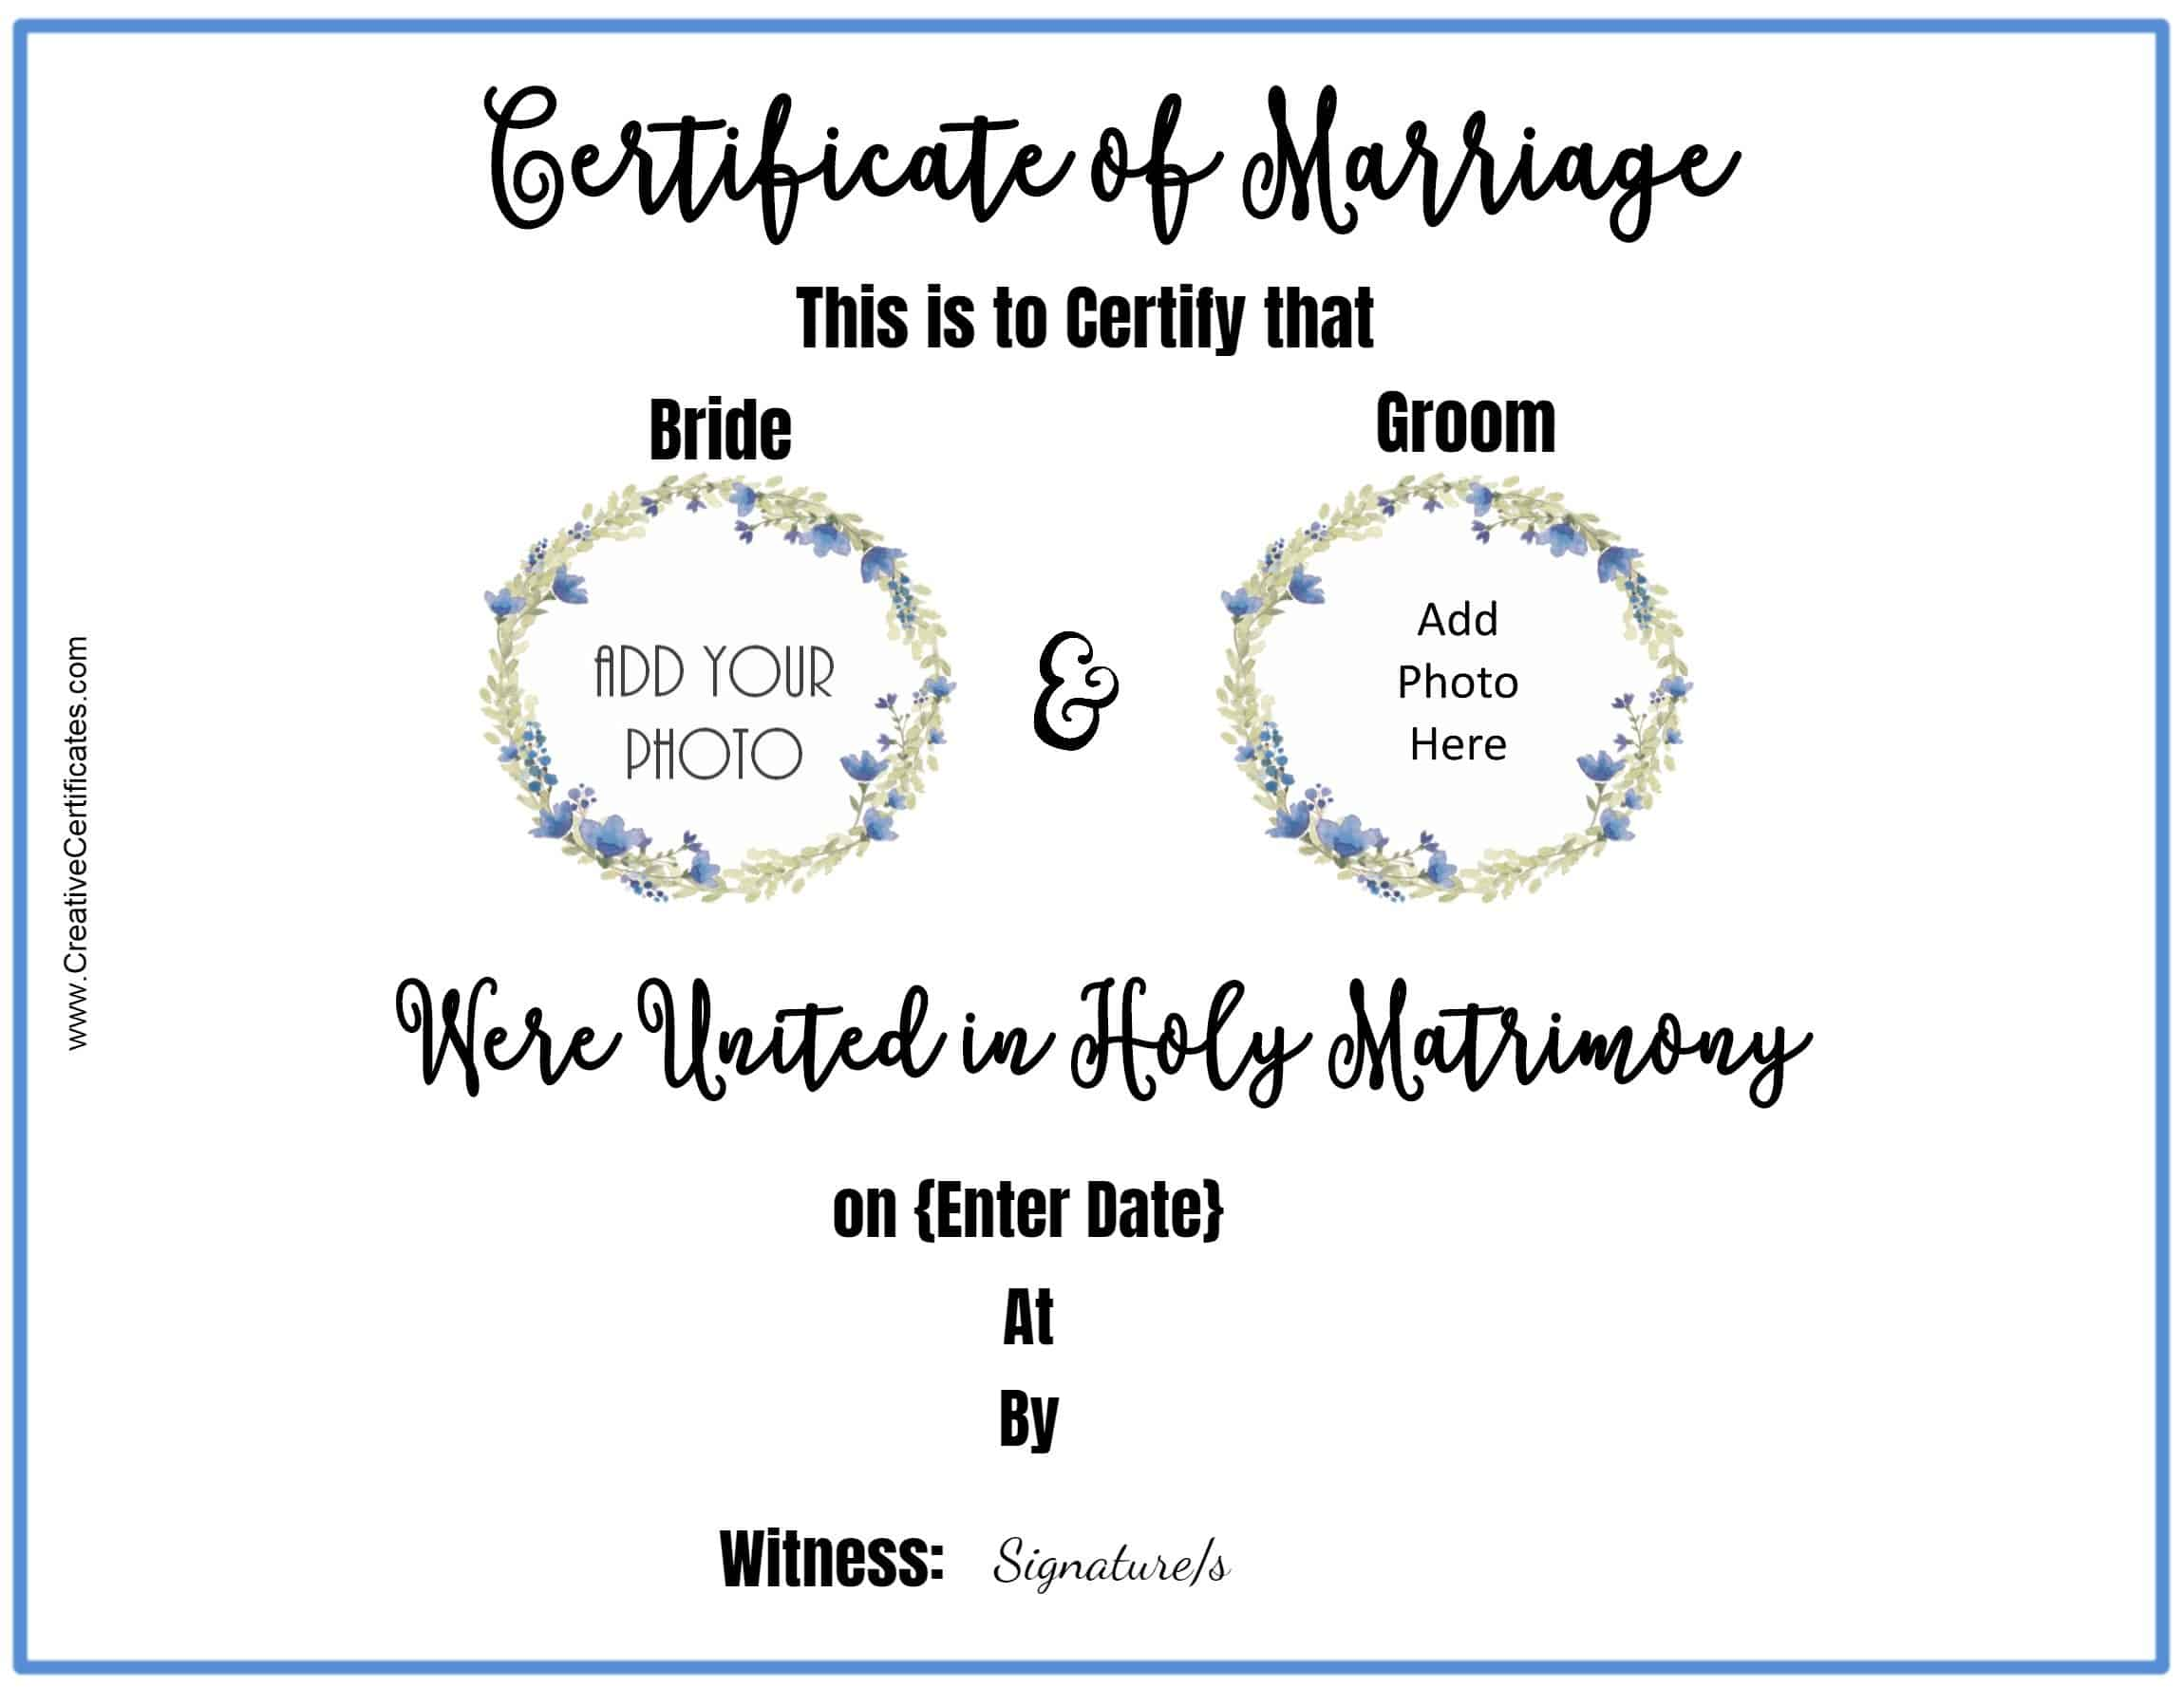 Wedding Certificate Template | Free Marriage Certificate Template Customize Online Then Print